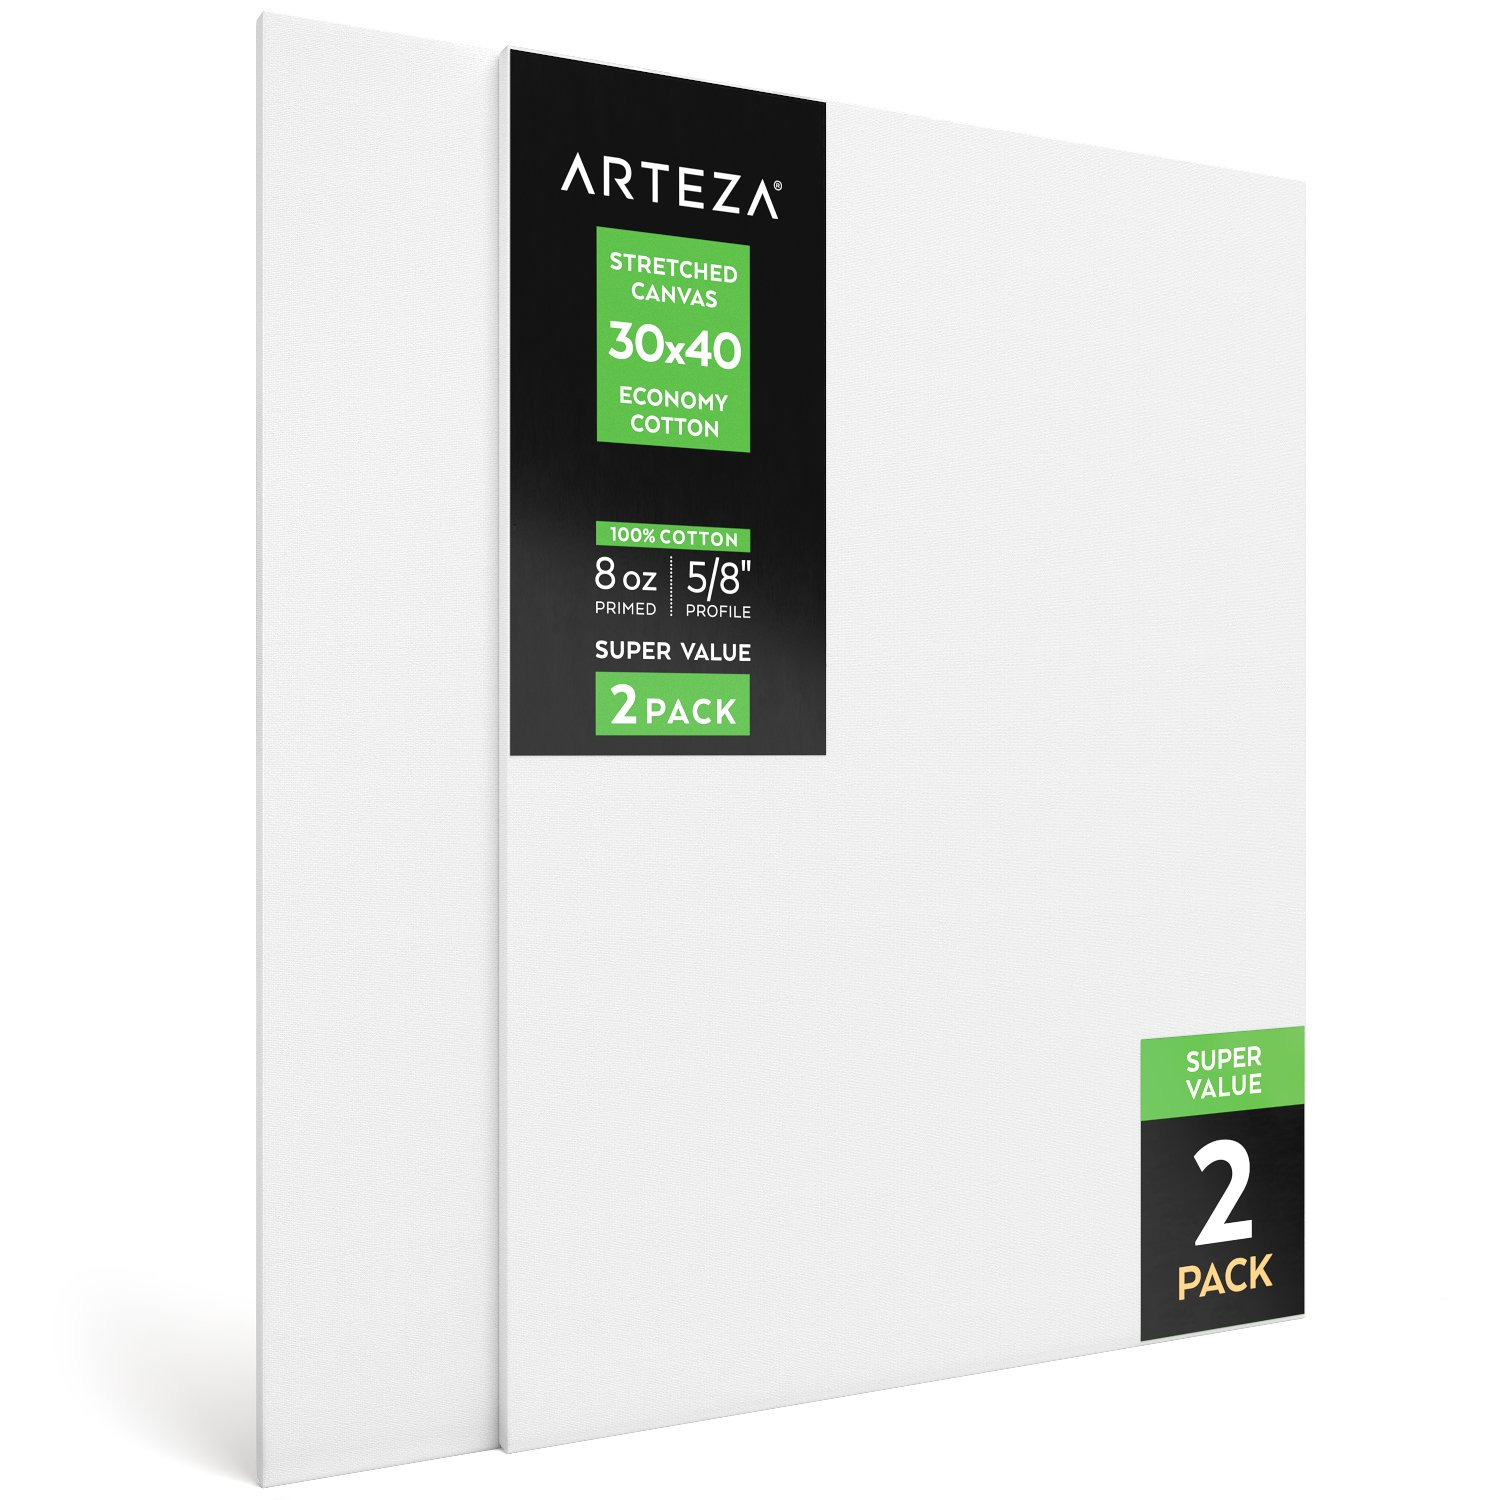 """Arteza 30x40"""" Stretched White Blank Canvas, Bulk Pack of 2, Primed, 100% Cotton for Painting, Acrylic Pouring, Oil Paint & Wet Art Media, Canvases for Professional Artist, Hobby Painters & Beginner"""